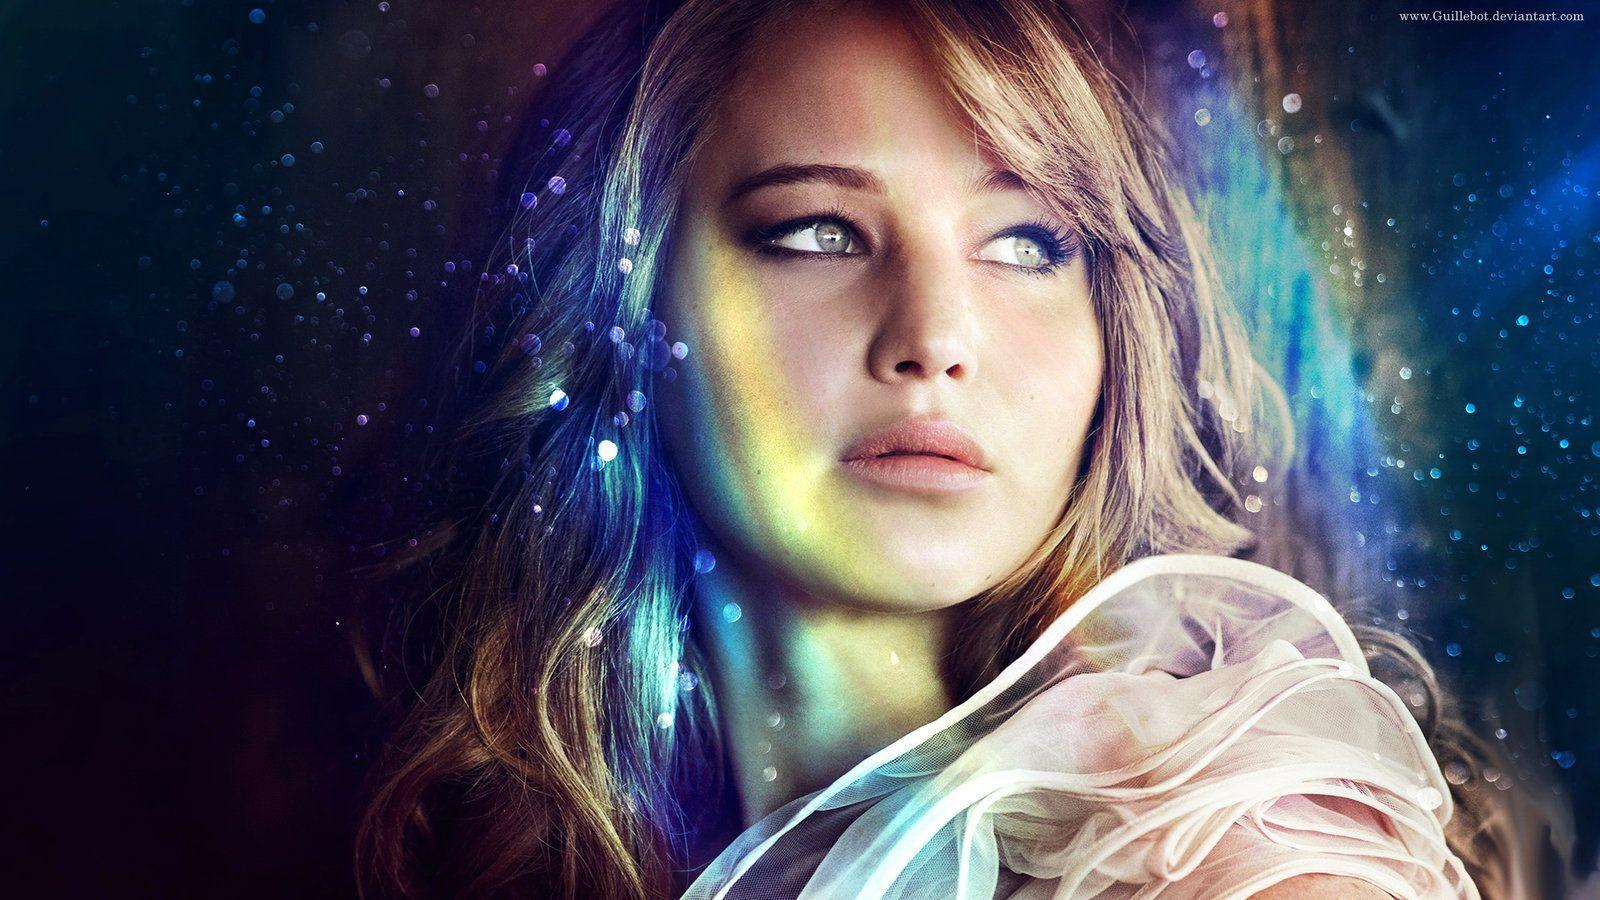 Jennifer Lawrence wallpaper by GuilleBot on DeviantArt